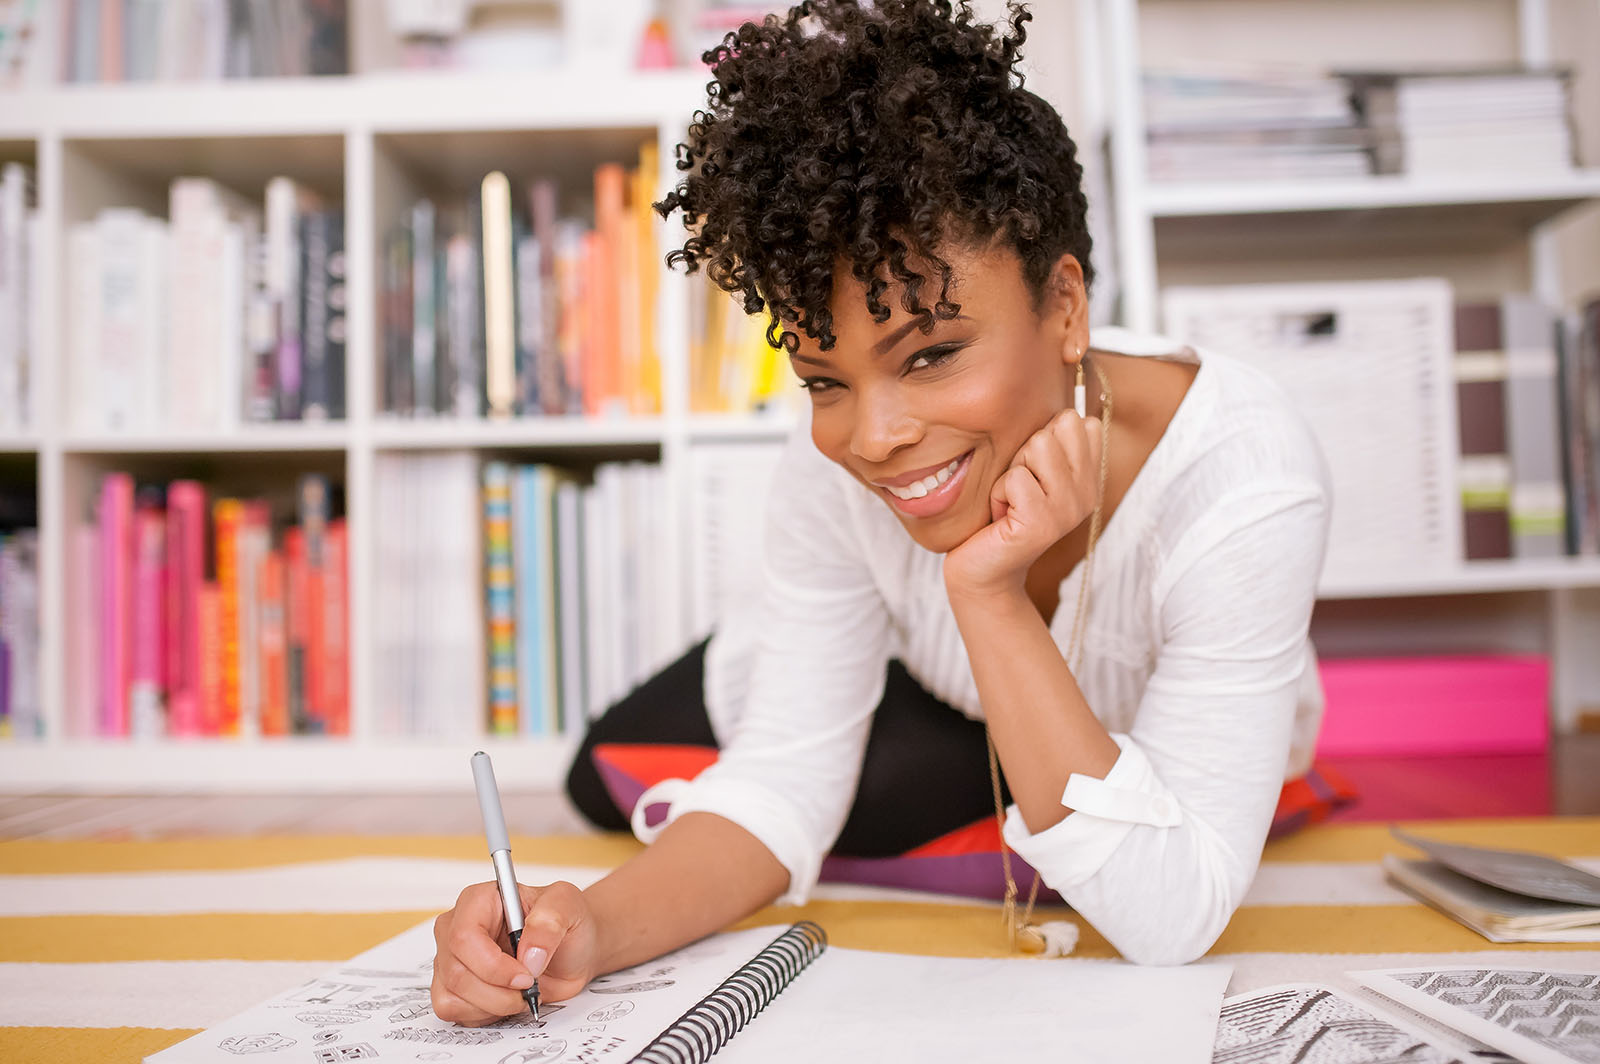 Lifestyle business portrait of a Black woman writing in notebook by Danielle Finney